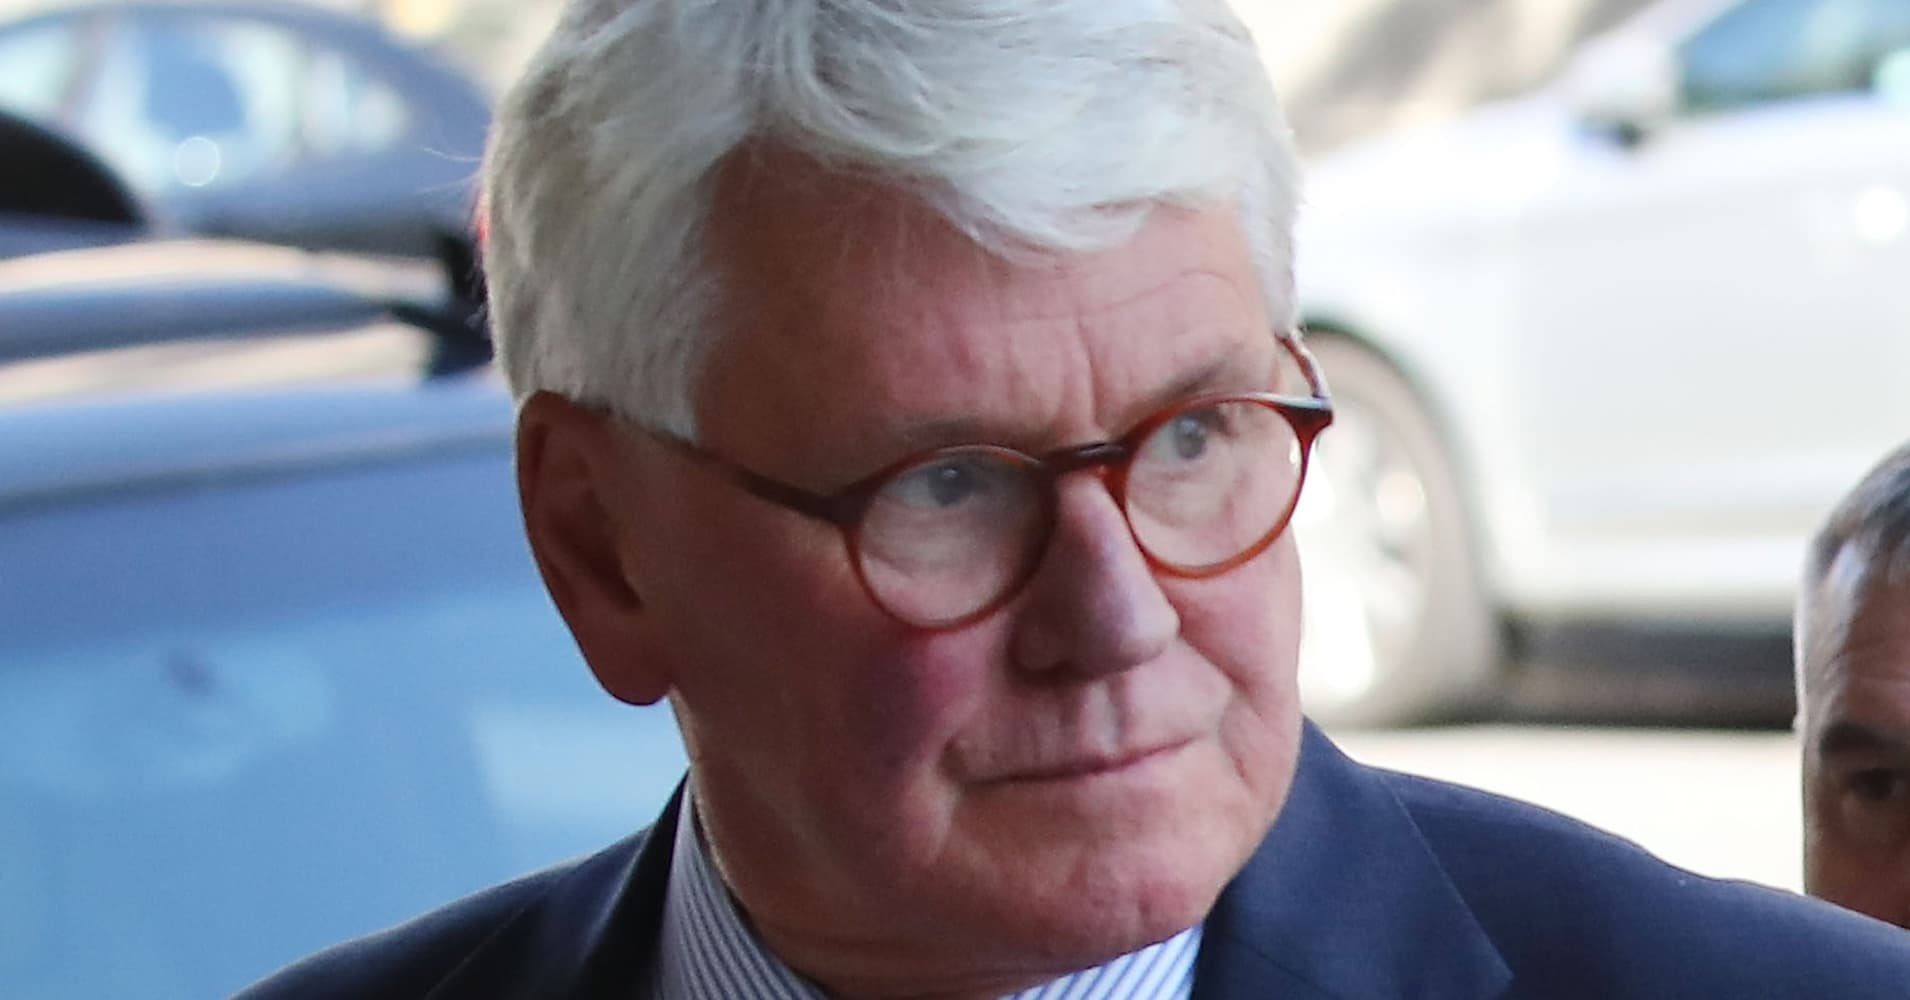 Obama White House counsel Greg Craig charged with lying to prosecutors about foreign lobbying